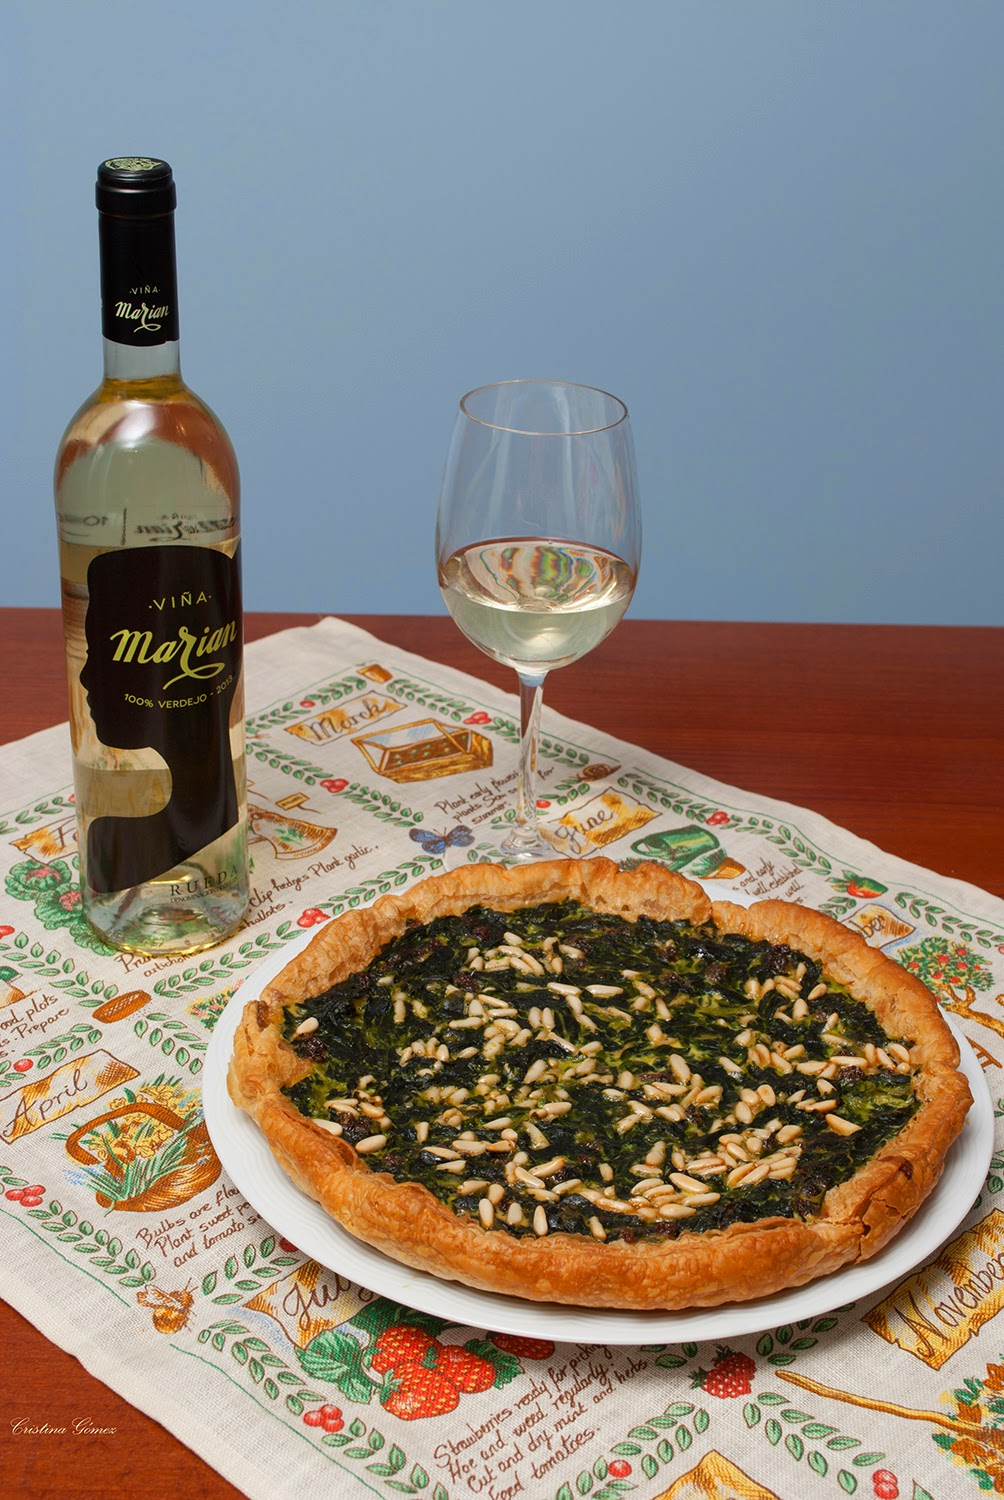 Spinach raisin and pine nut quiche recipe